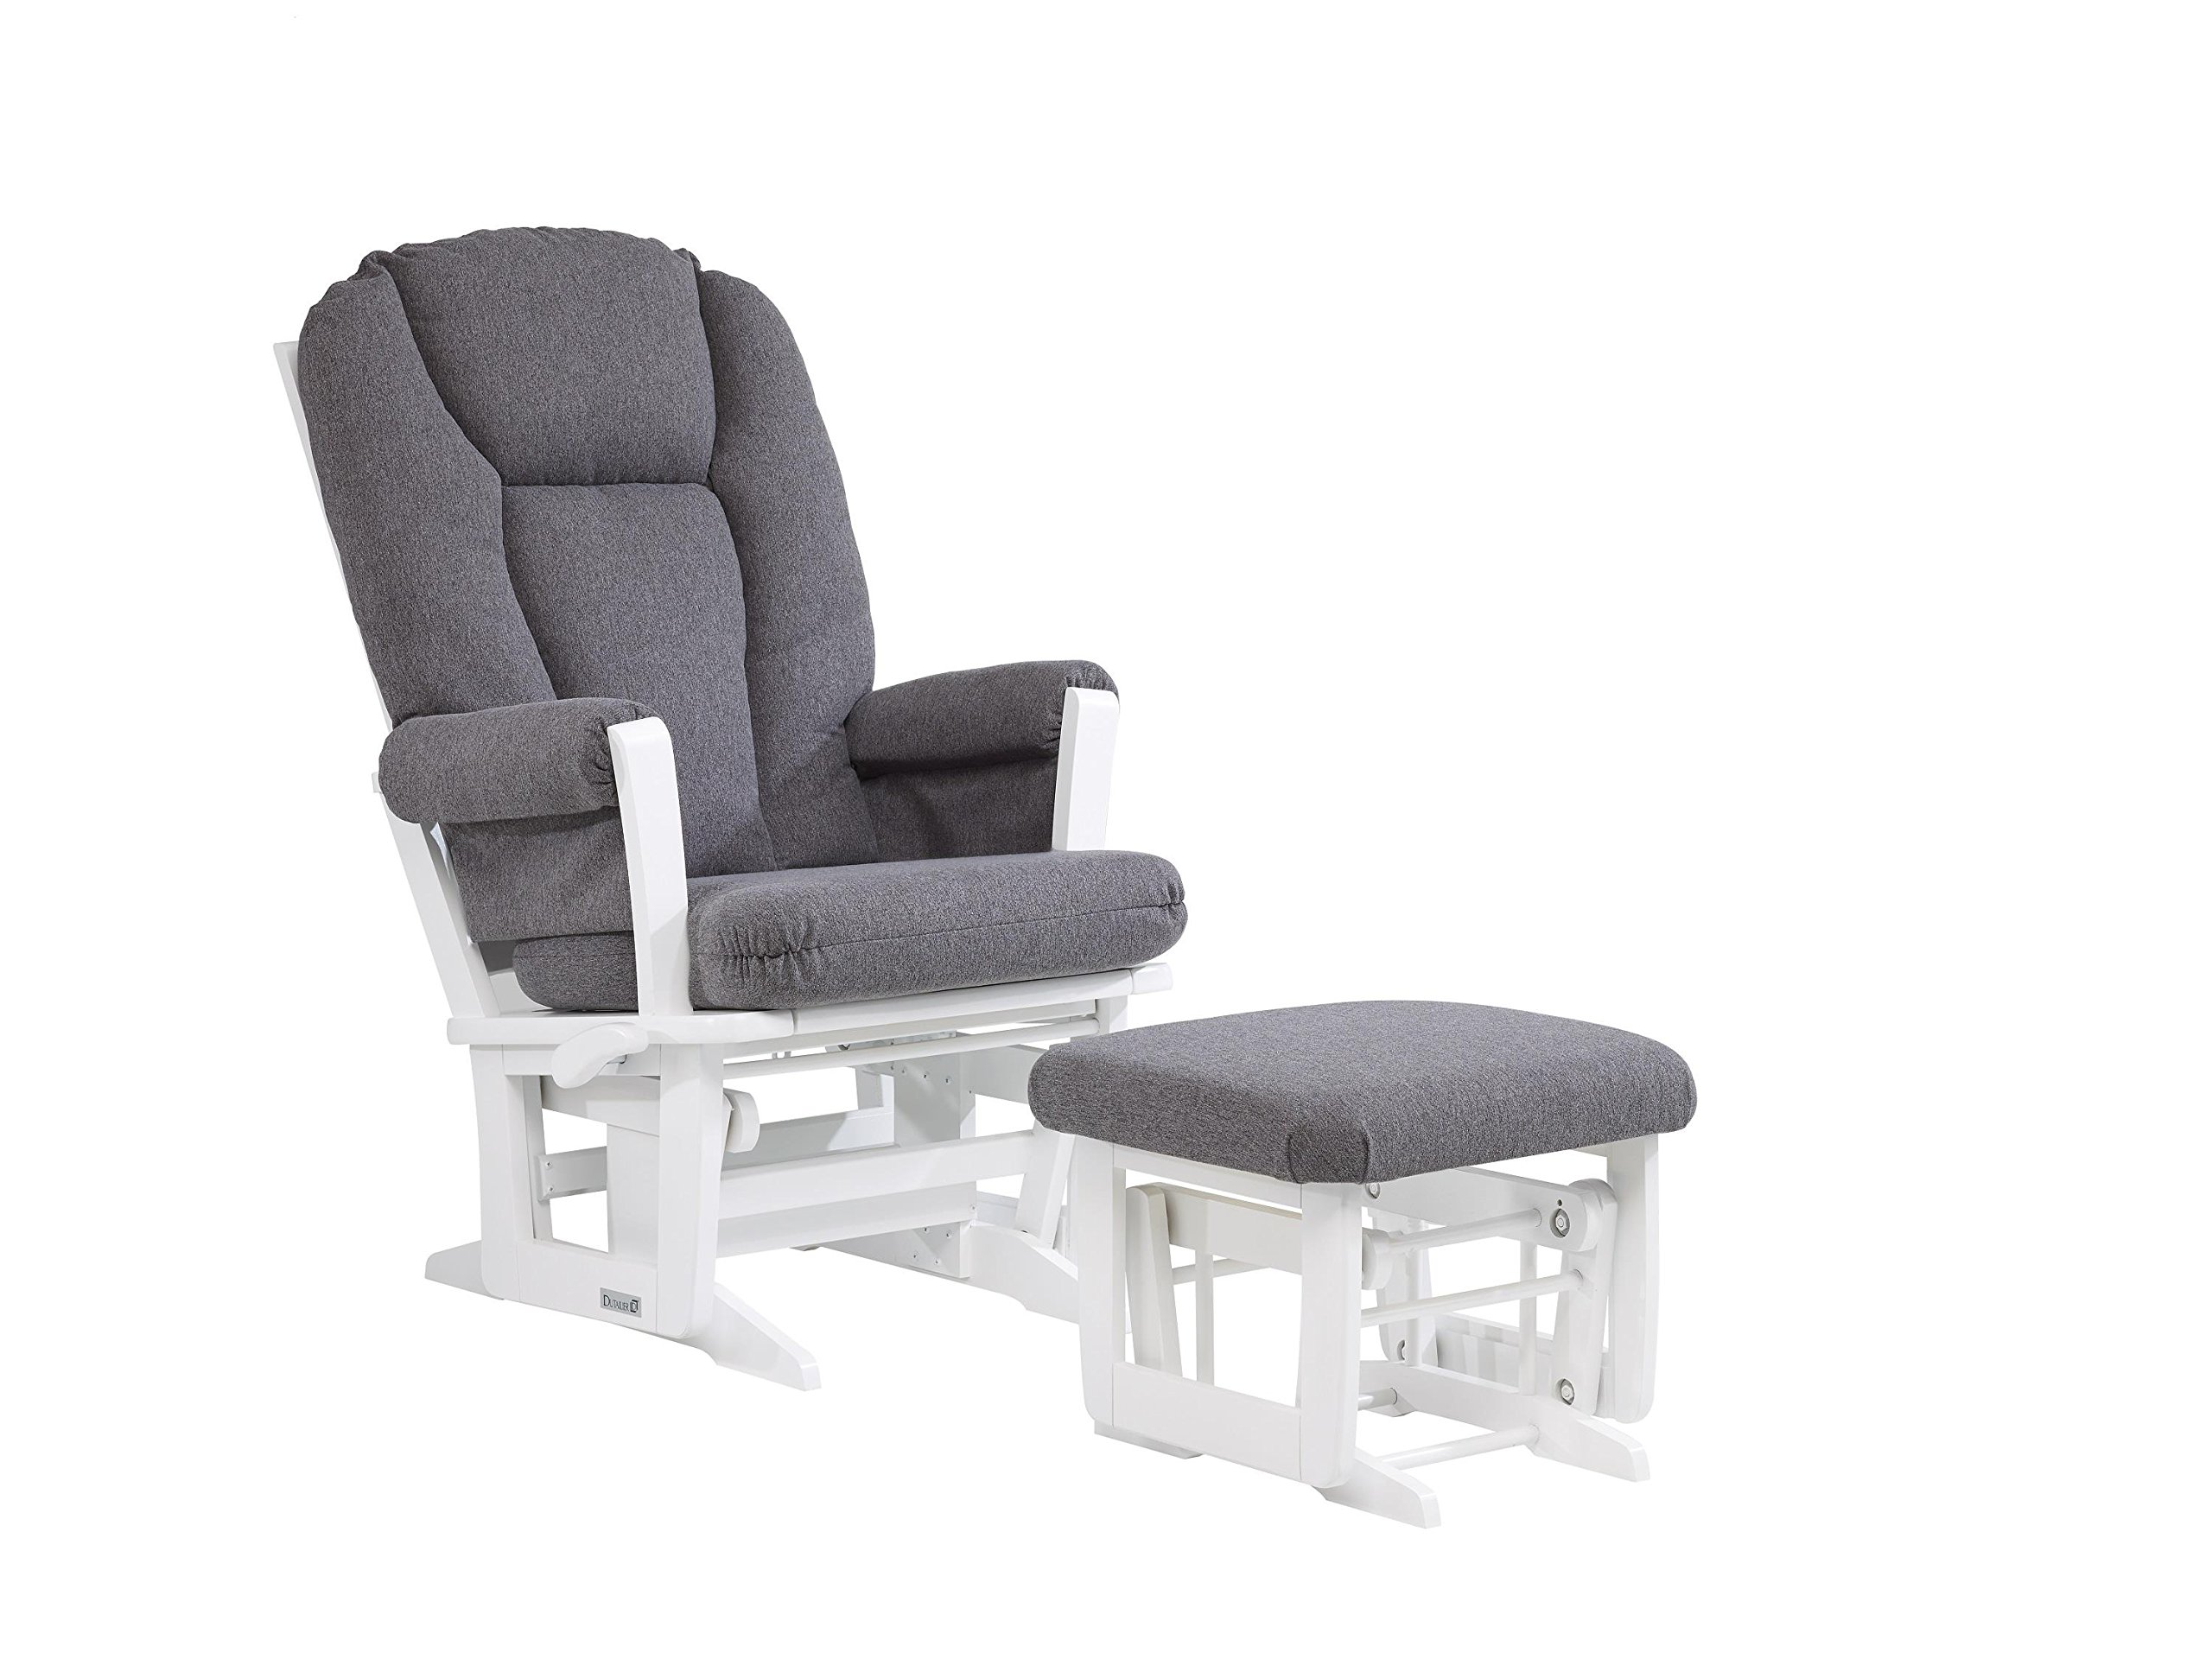 Dutailier Modern 0410 Glider Multiposition-Lock Recline with Nursing Ottoman Included by Dutailier